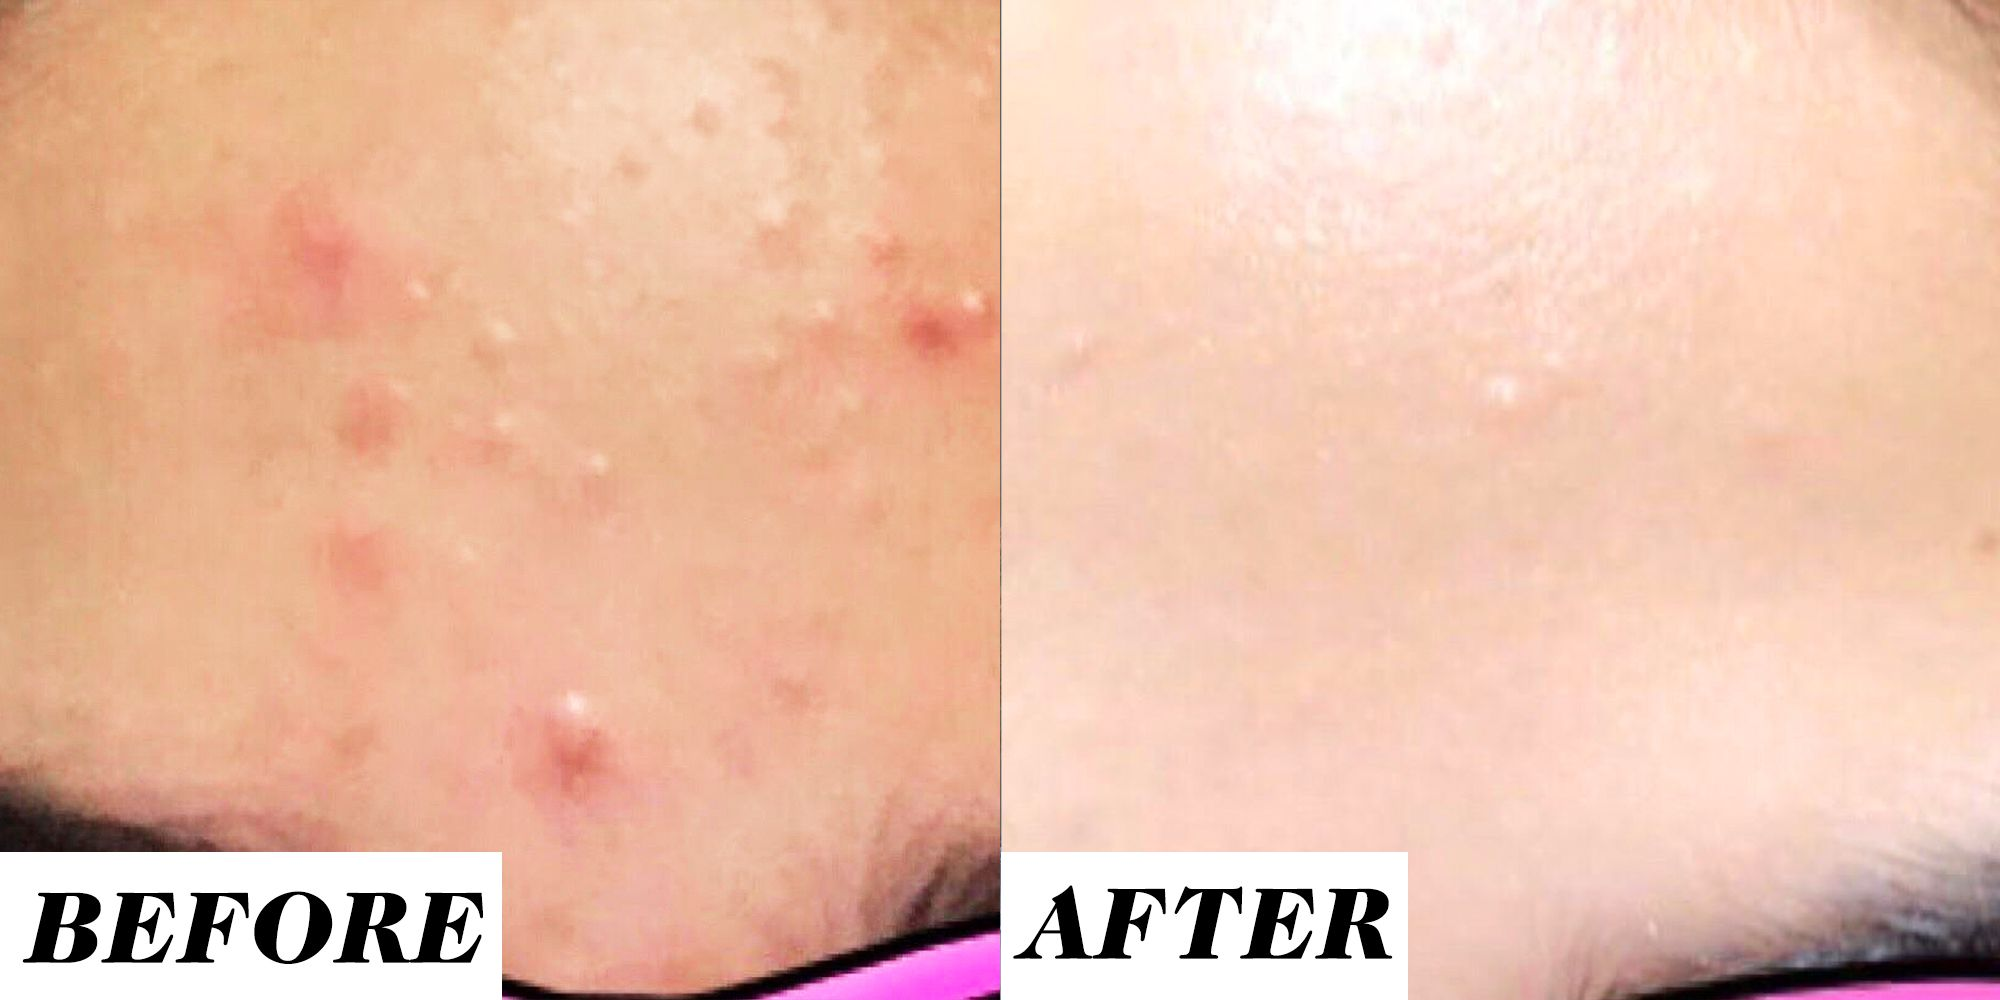 This Retinol Before And After Acne Treatment On Reddit Is Going Viral